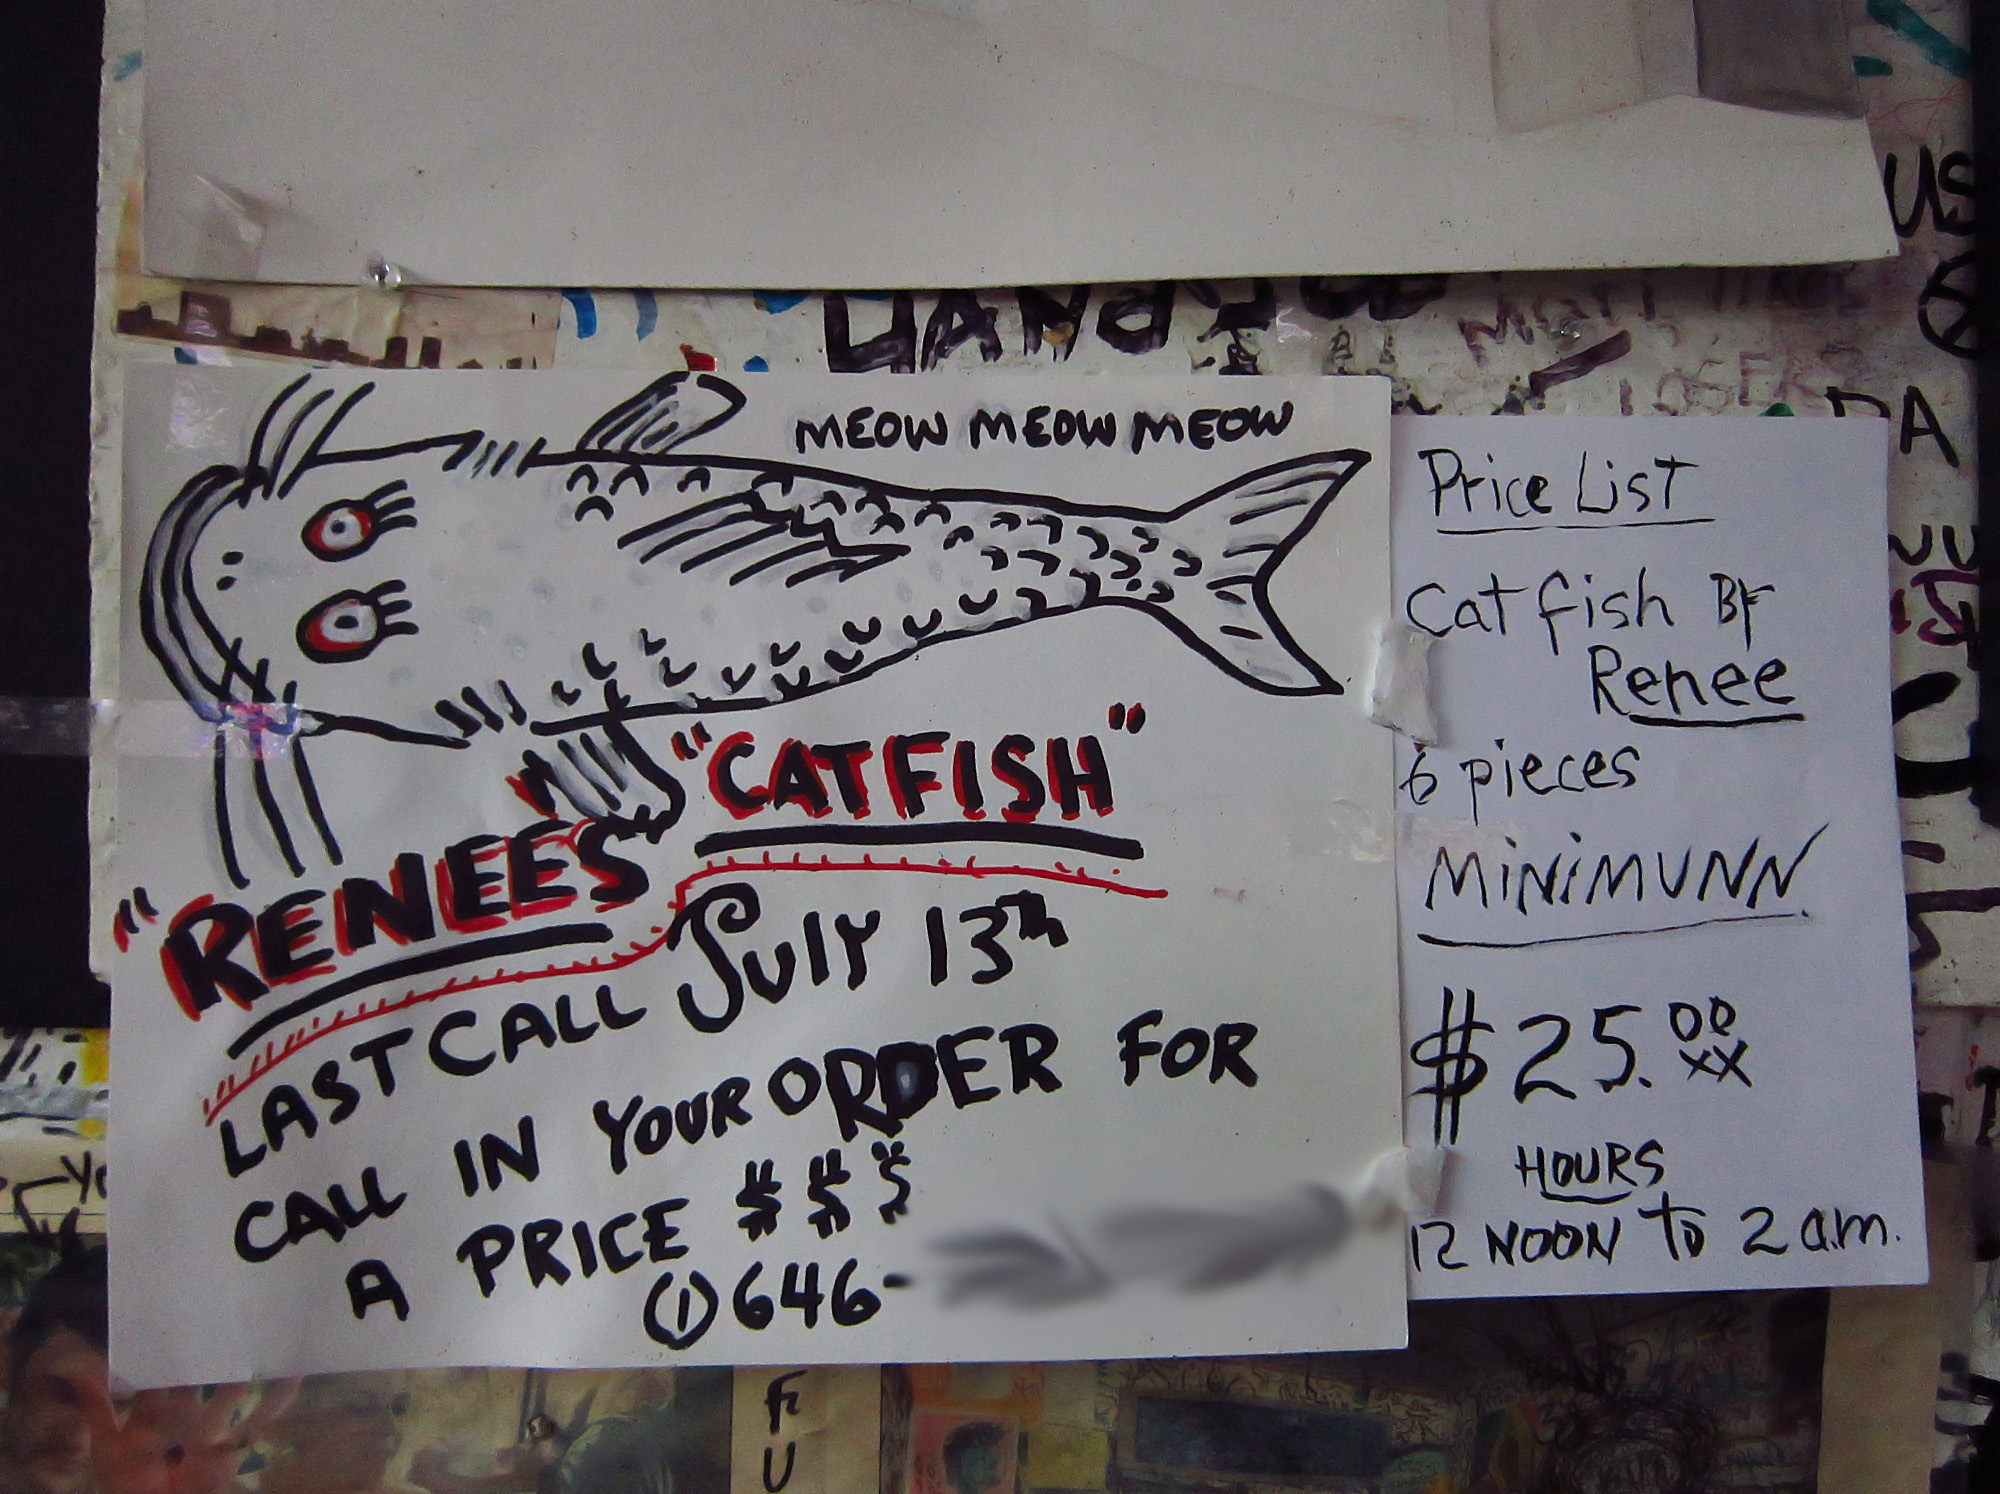 Renee's catfish